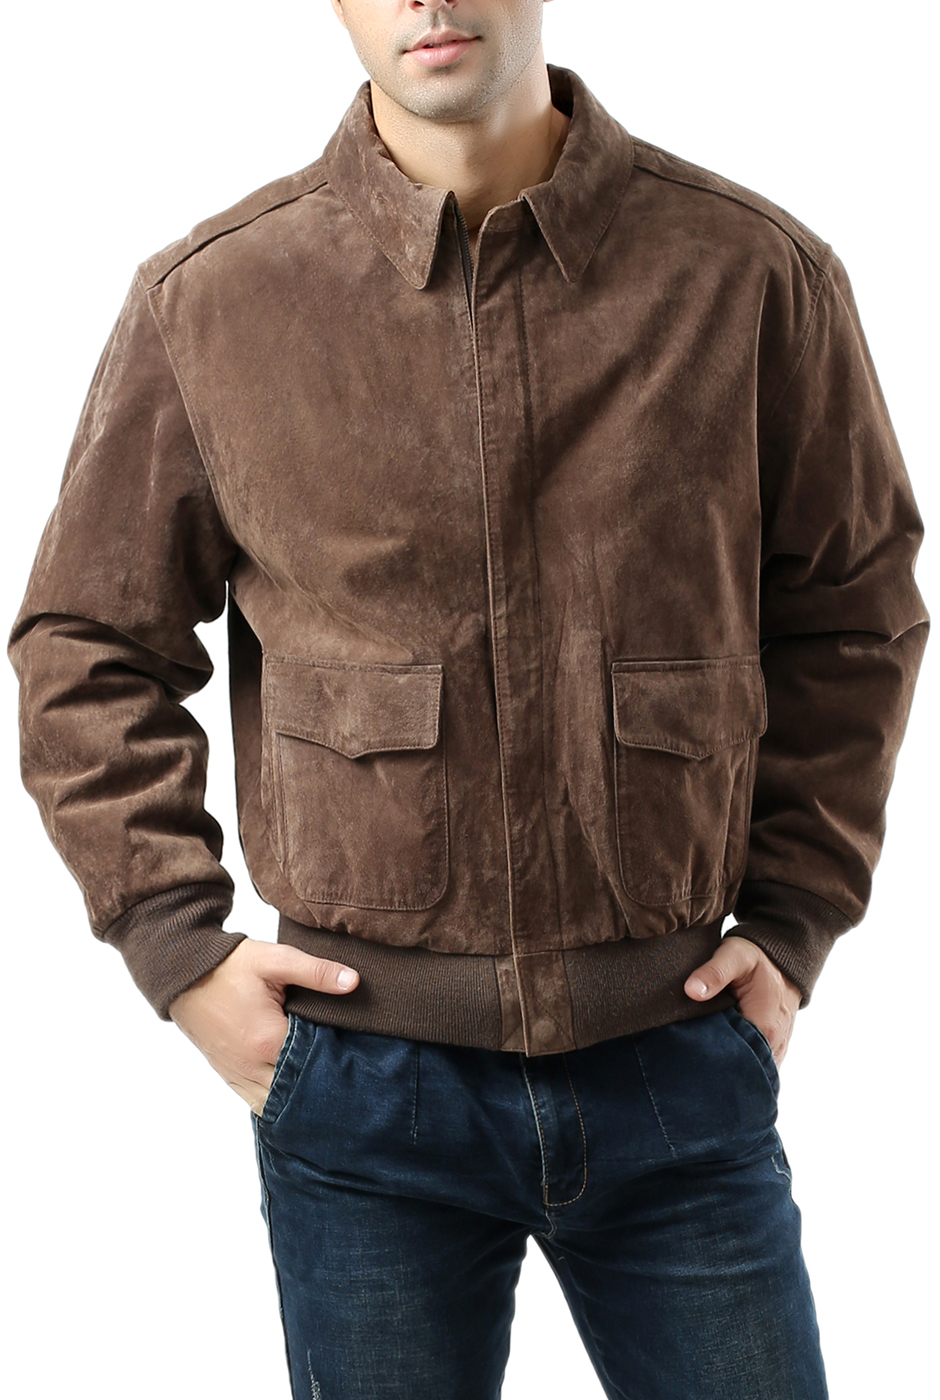 Regular and Big /& Tall Landing Leathers Mens Air Force A-2 Suede Leather Flight Jacket